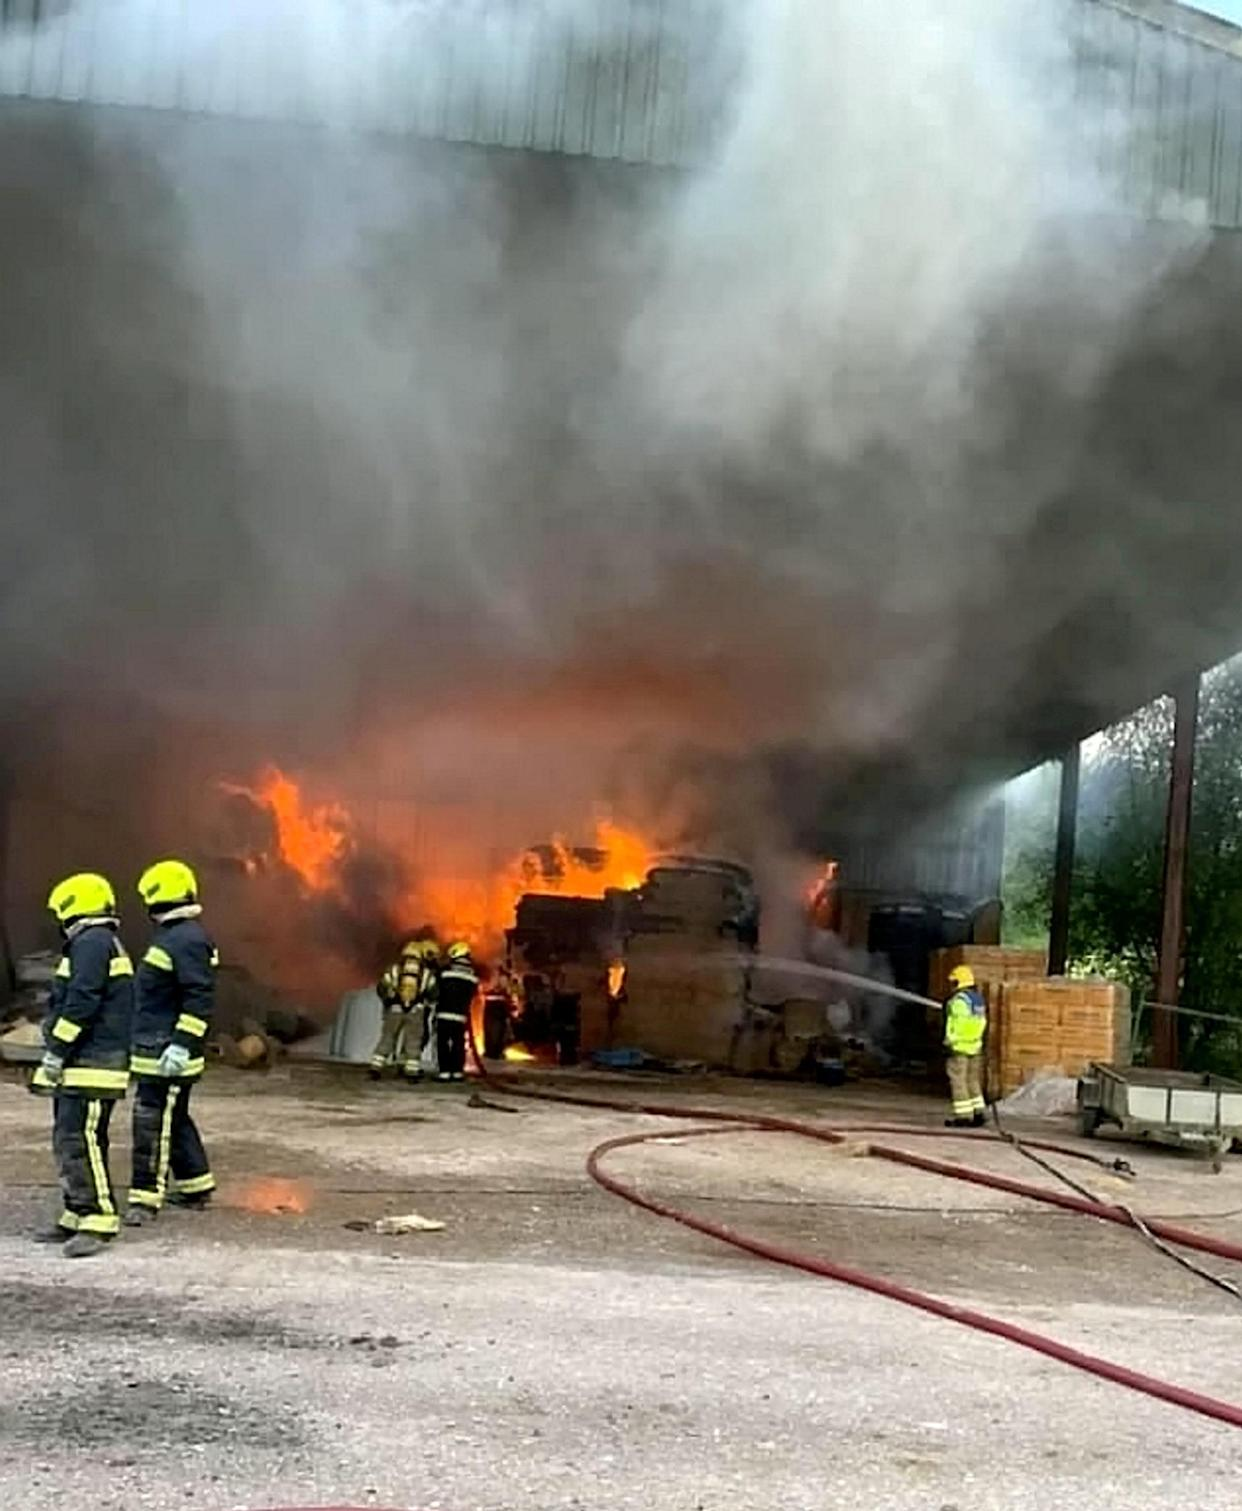 A spate of barn fires in the south west of England include one in Crewkerne, Somerset on 7 July. (SWNS)